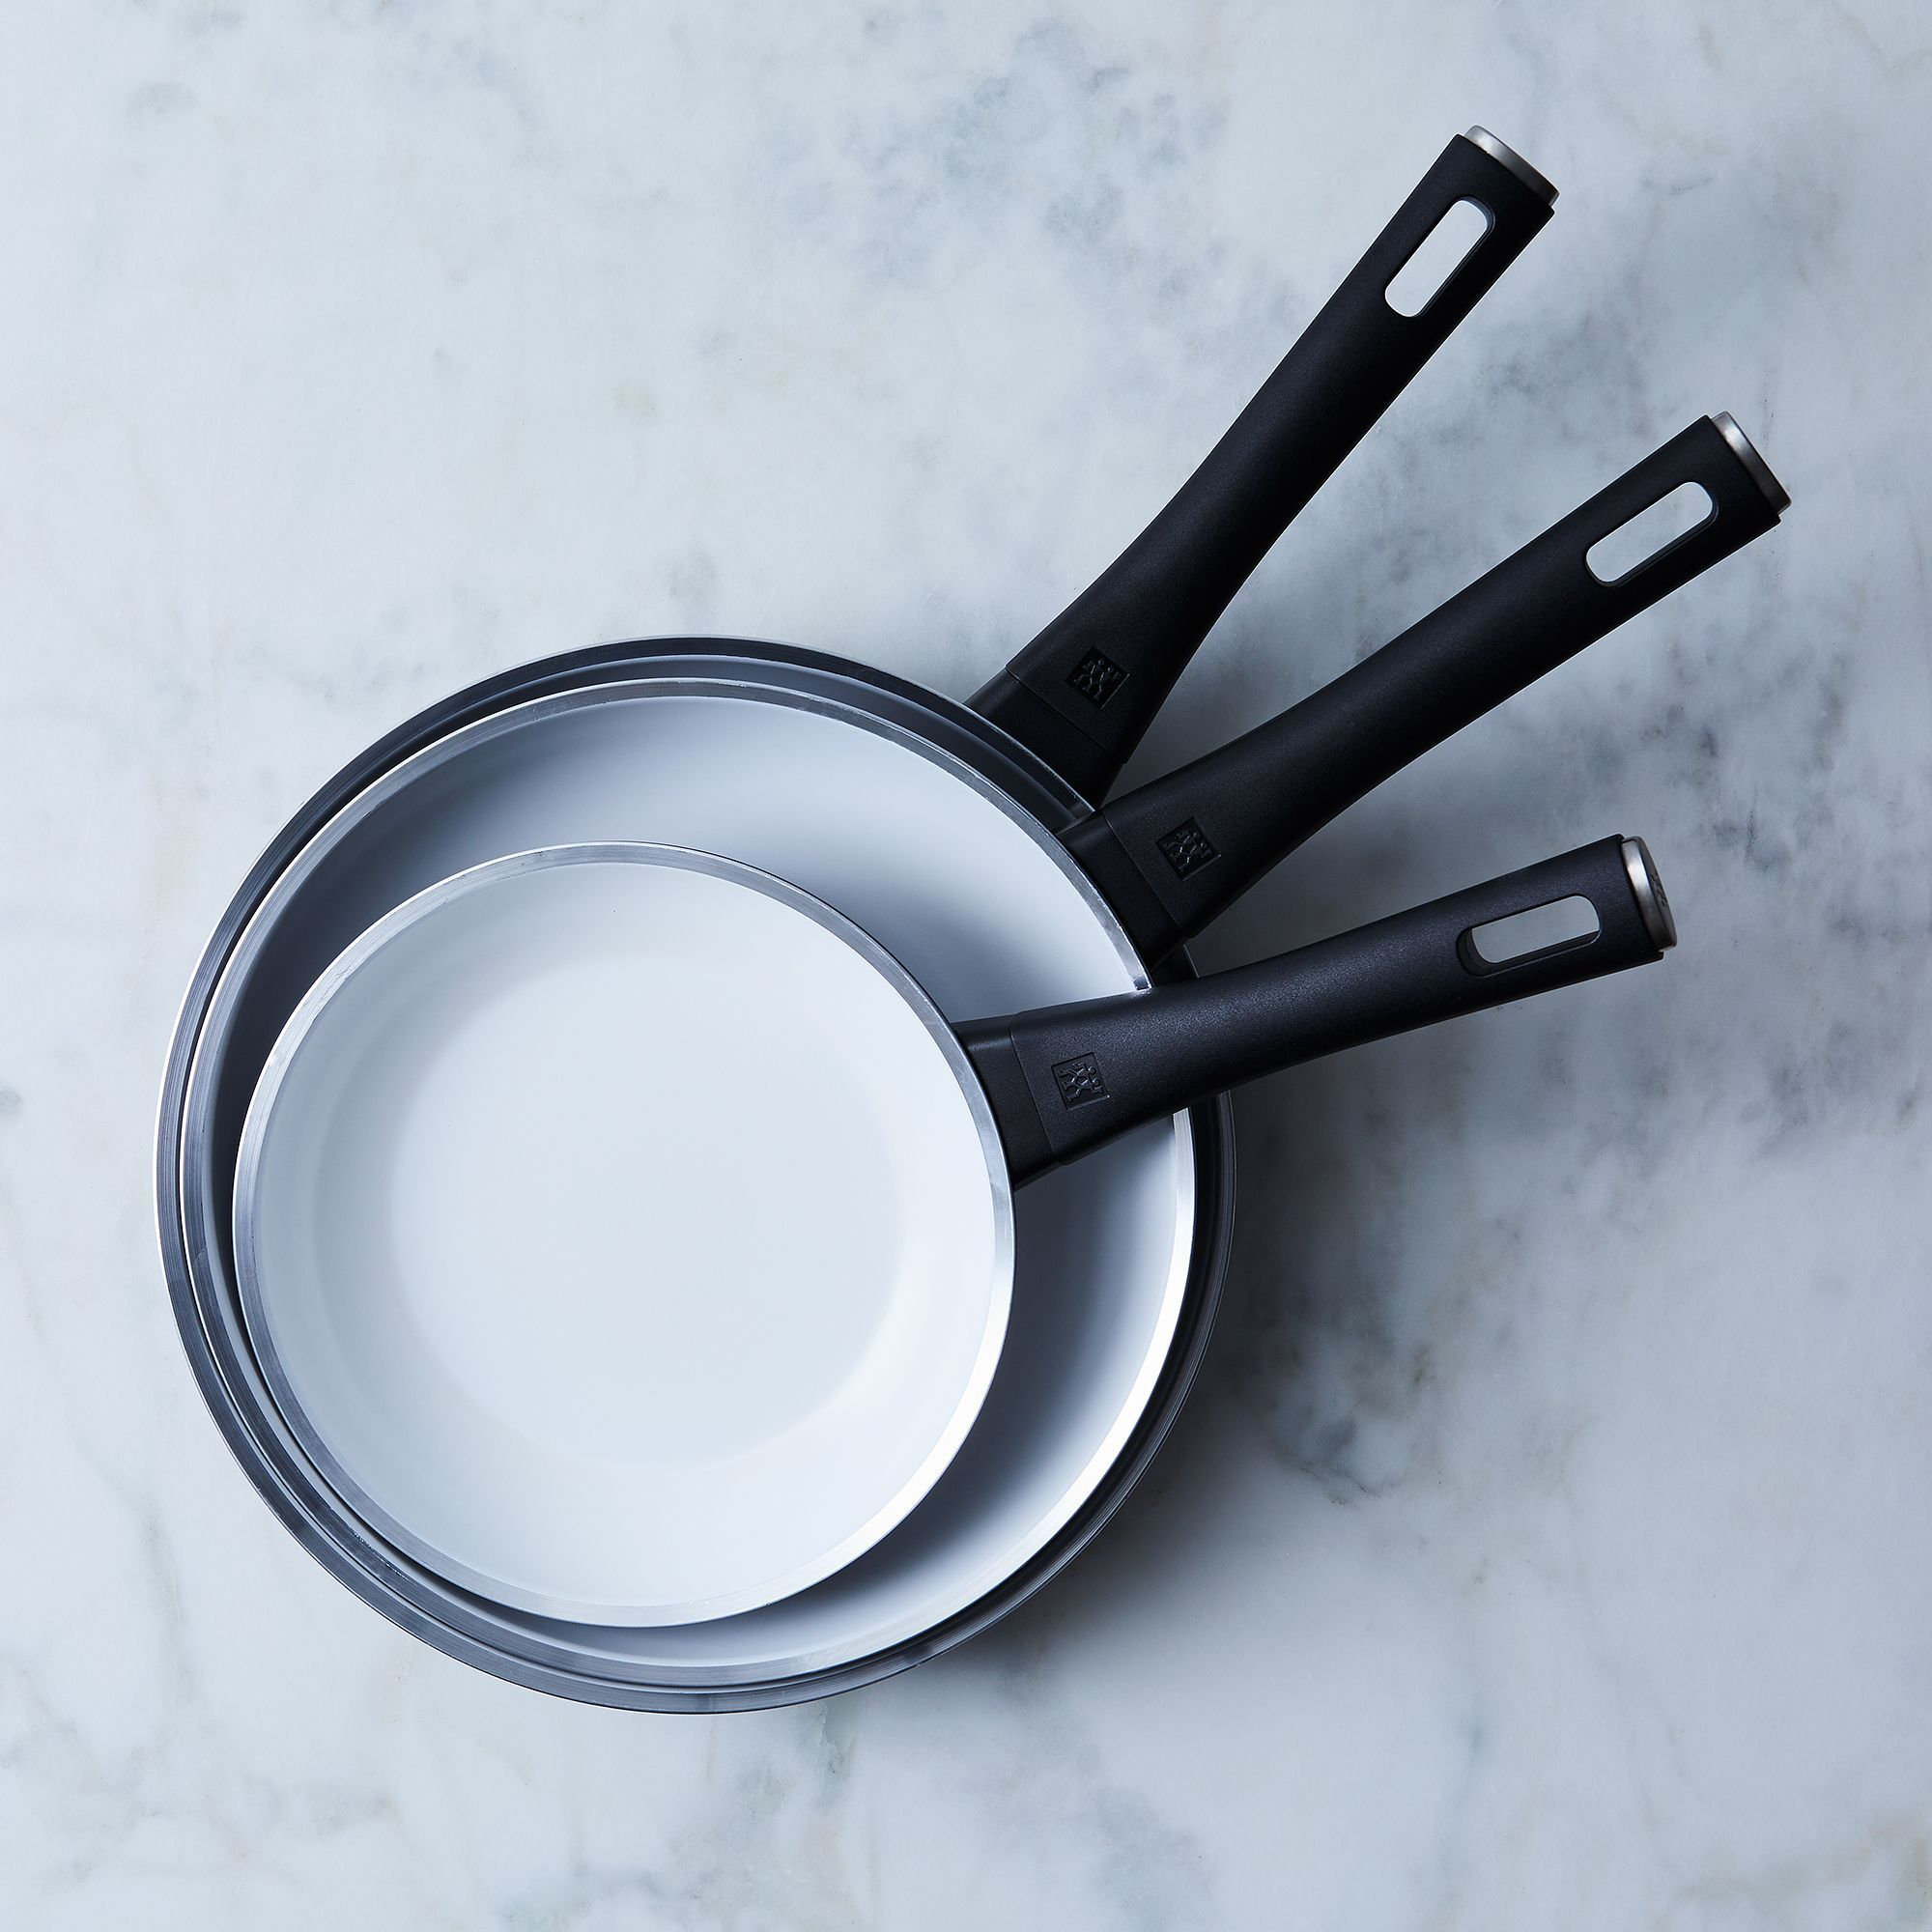 The Ceramic Nonstick Pan Destined For Kitchen Greatness Ceramic Cookware Ceramic Coated Pans Staub Cookware